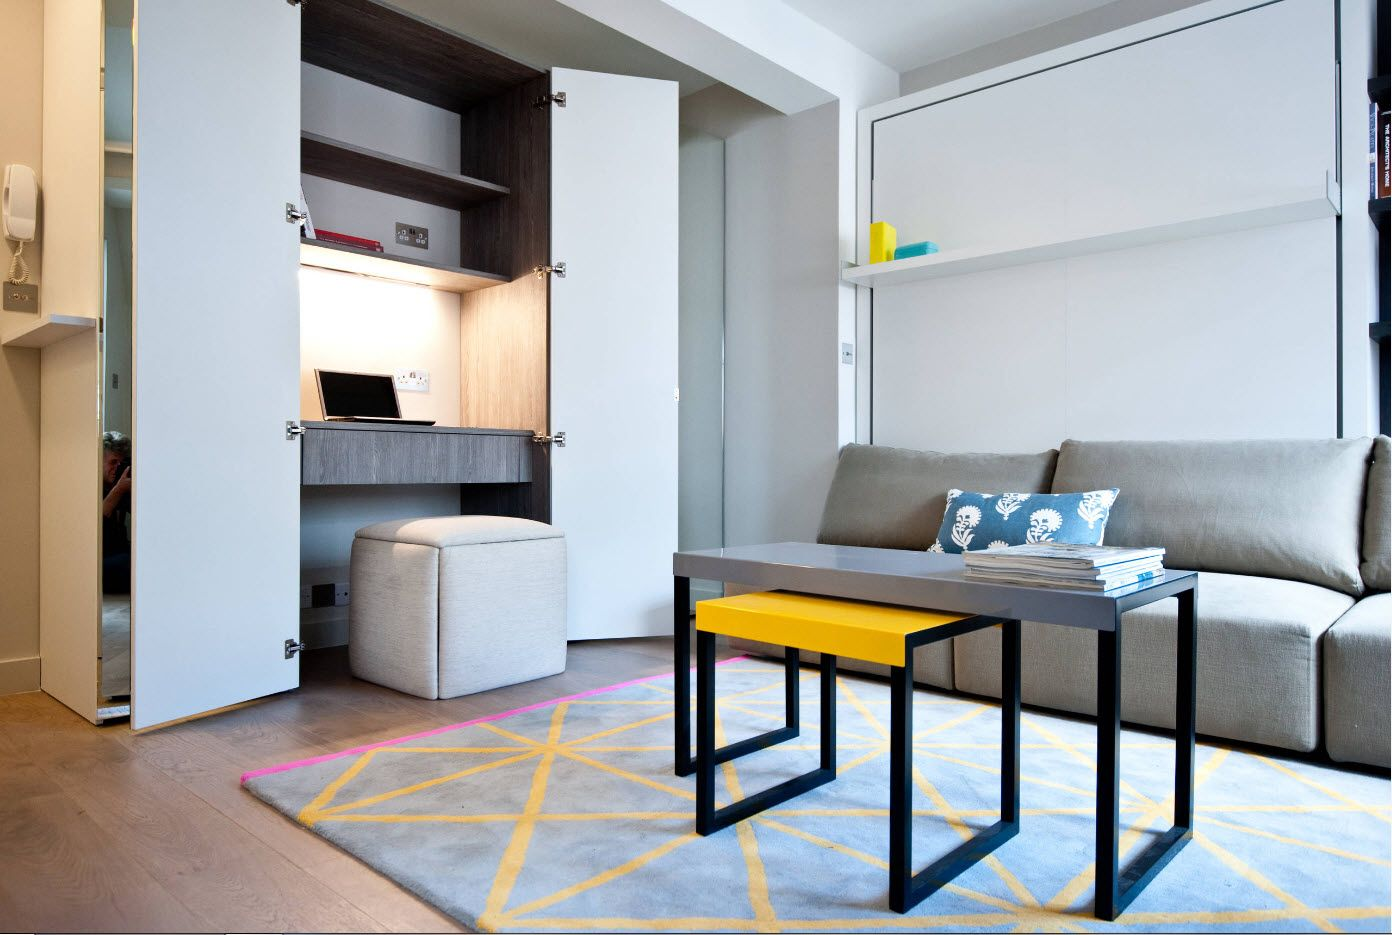 Top 100 Modern Home Office Design Trends 2017. Ultramodern interior with accent yellow table and yellow lines at the rug